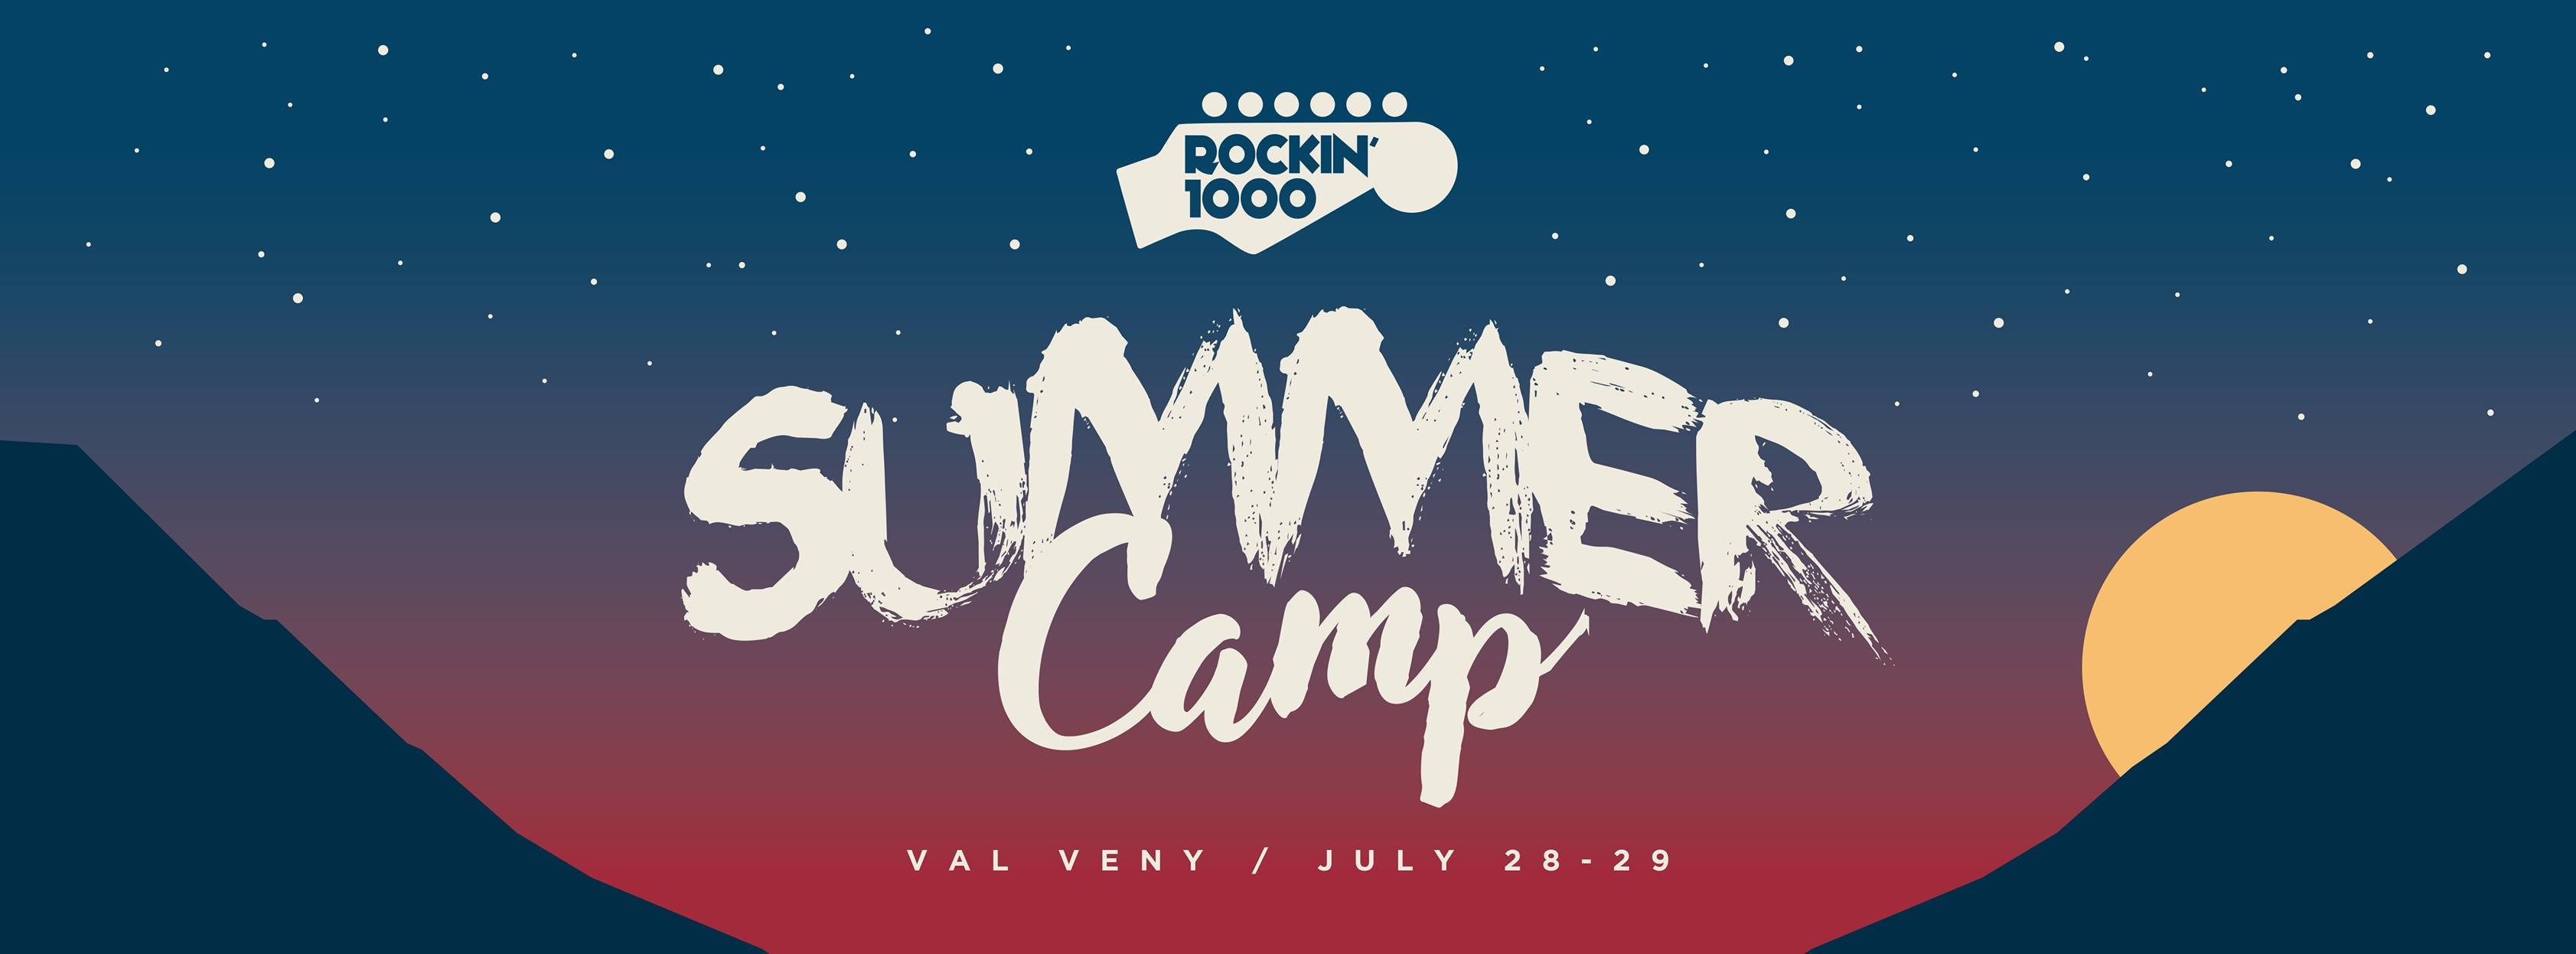 Rock in 1000 - Summer Camp 2017